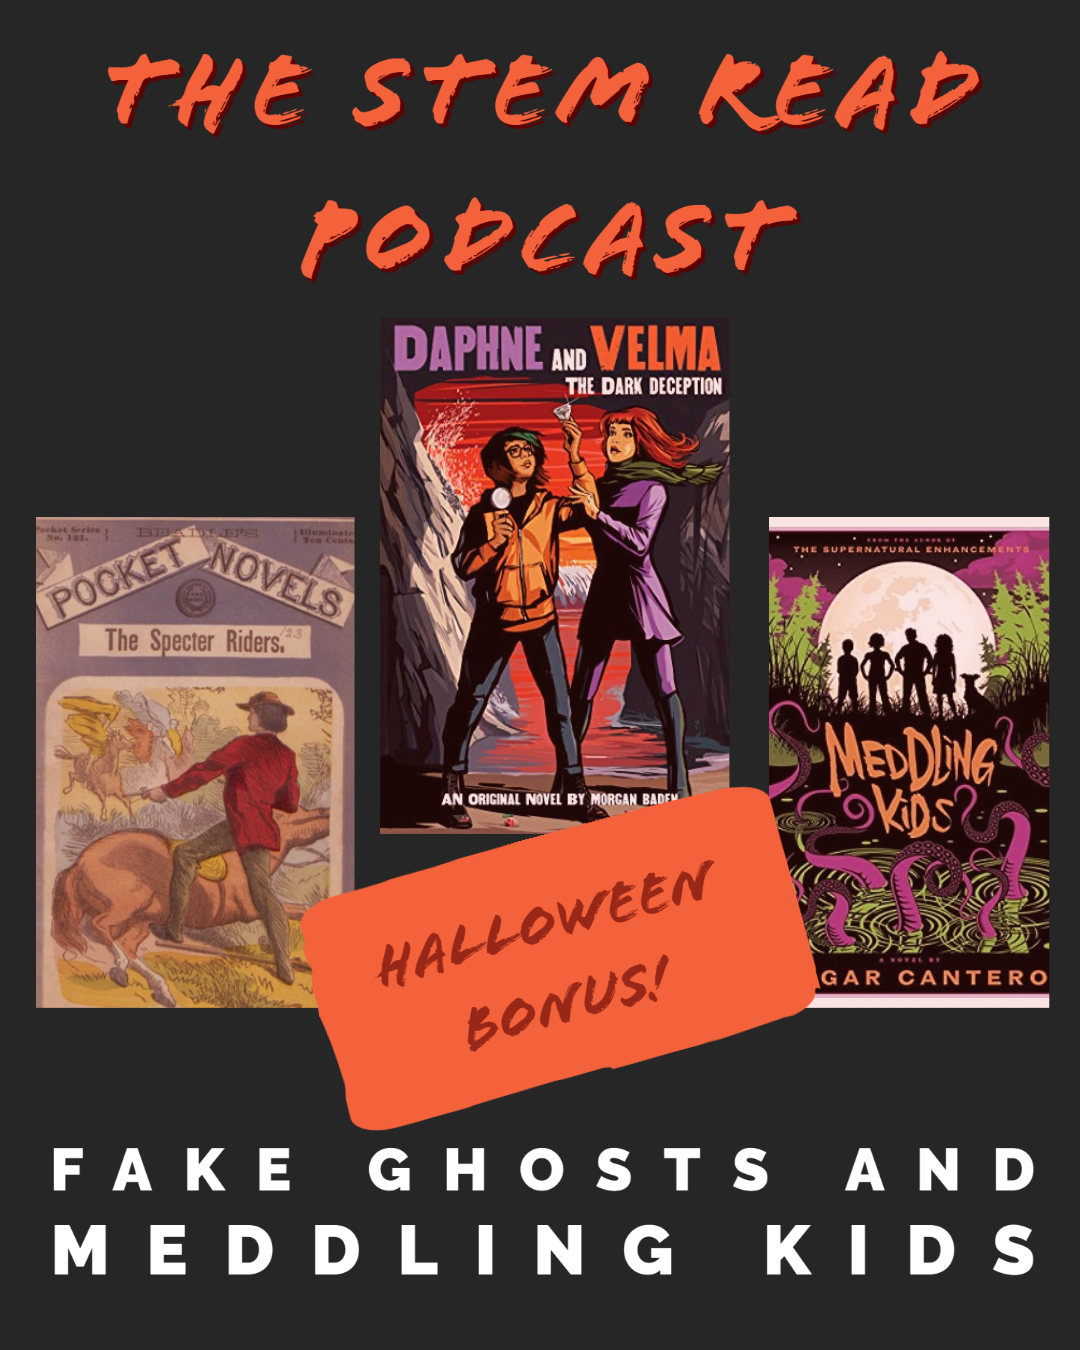 The STEM Read Podcast - Fake Ghosts and Meddling Kids